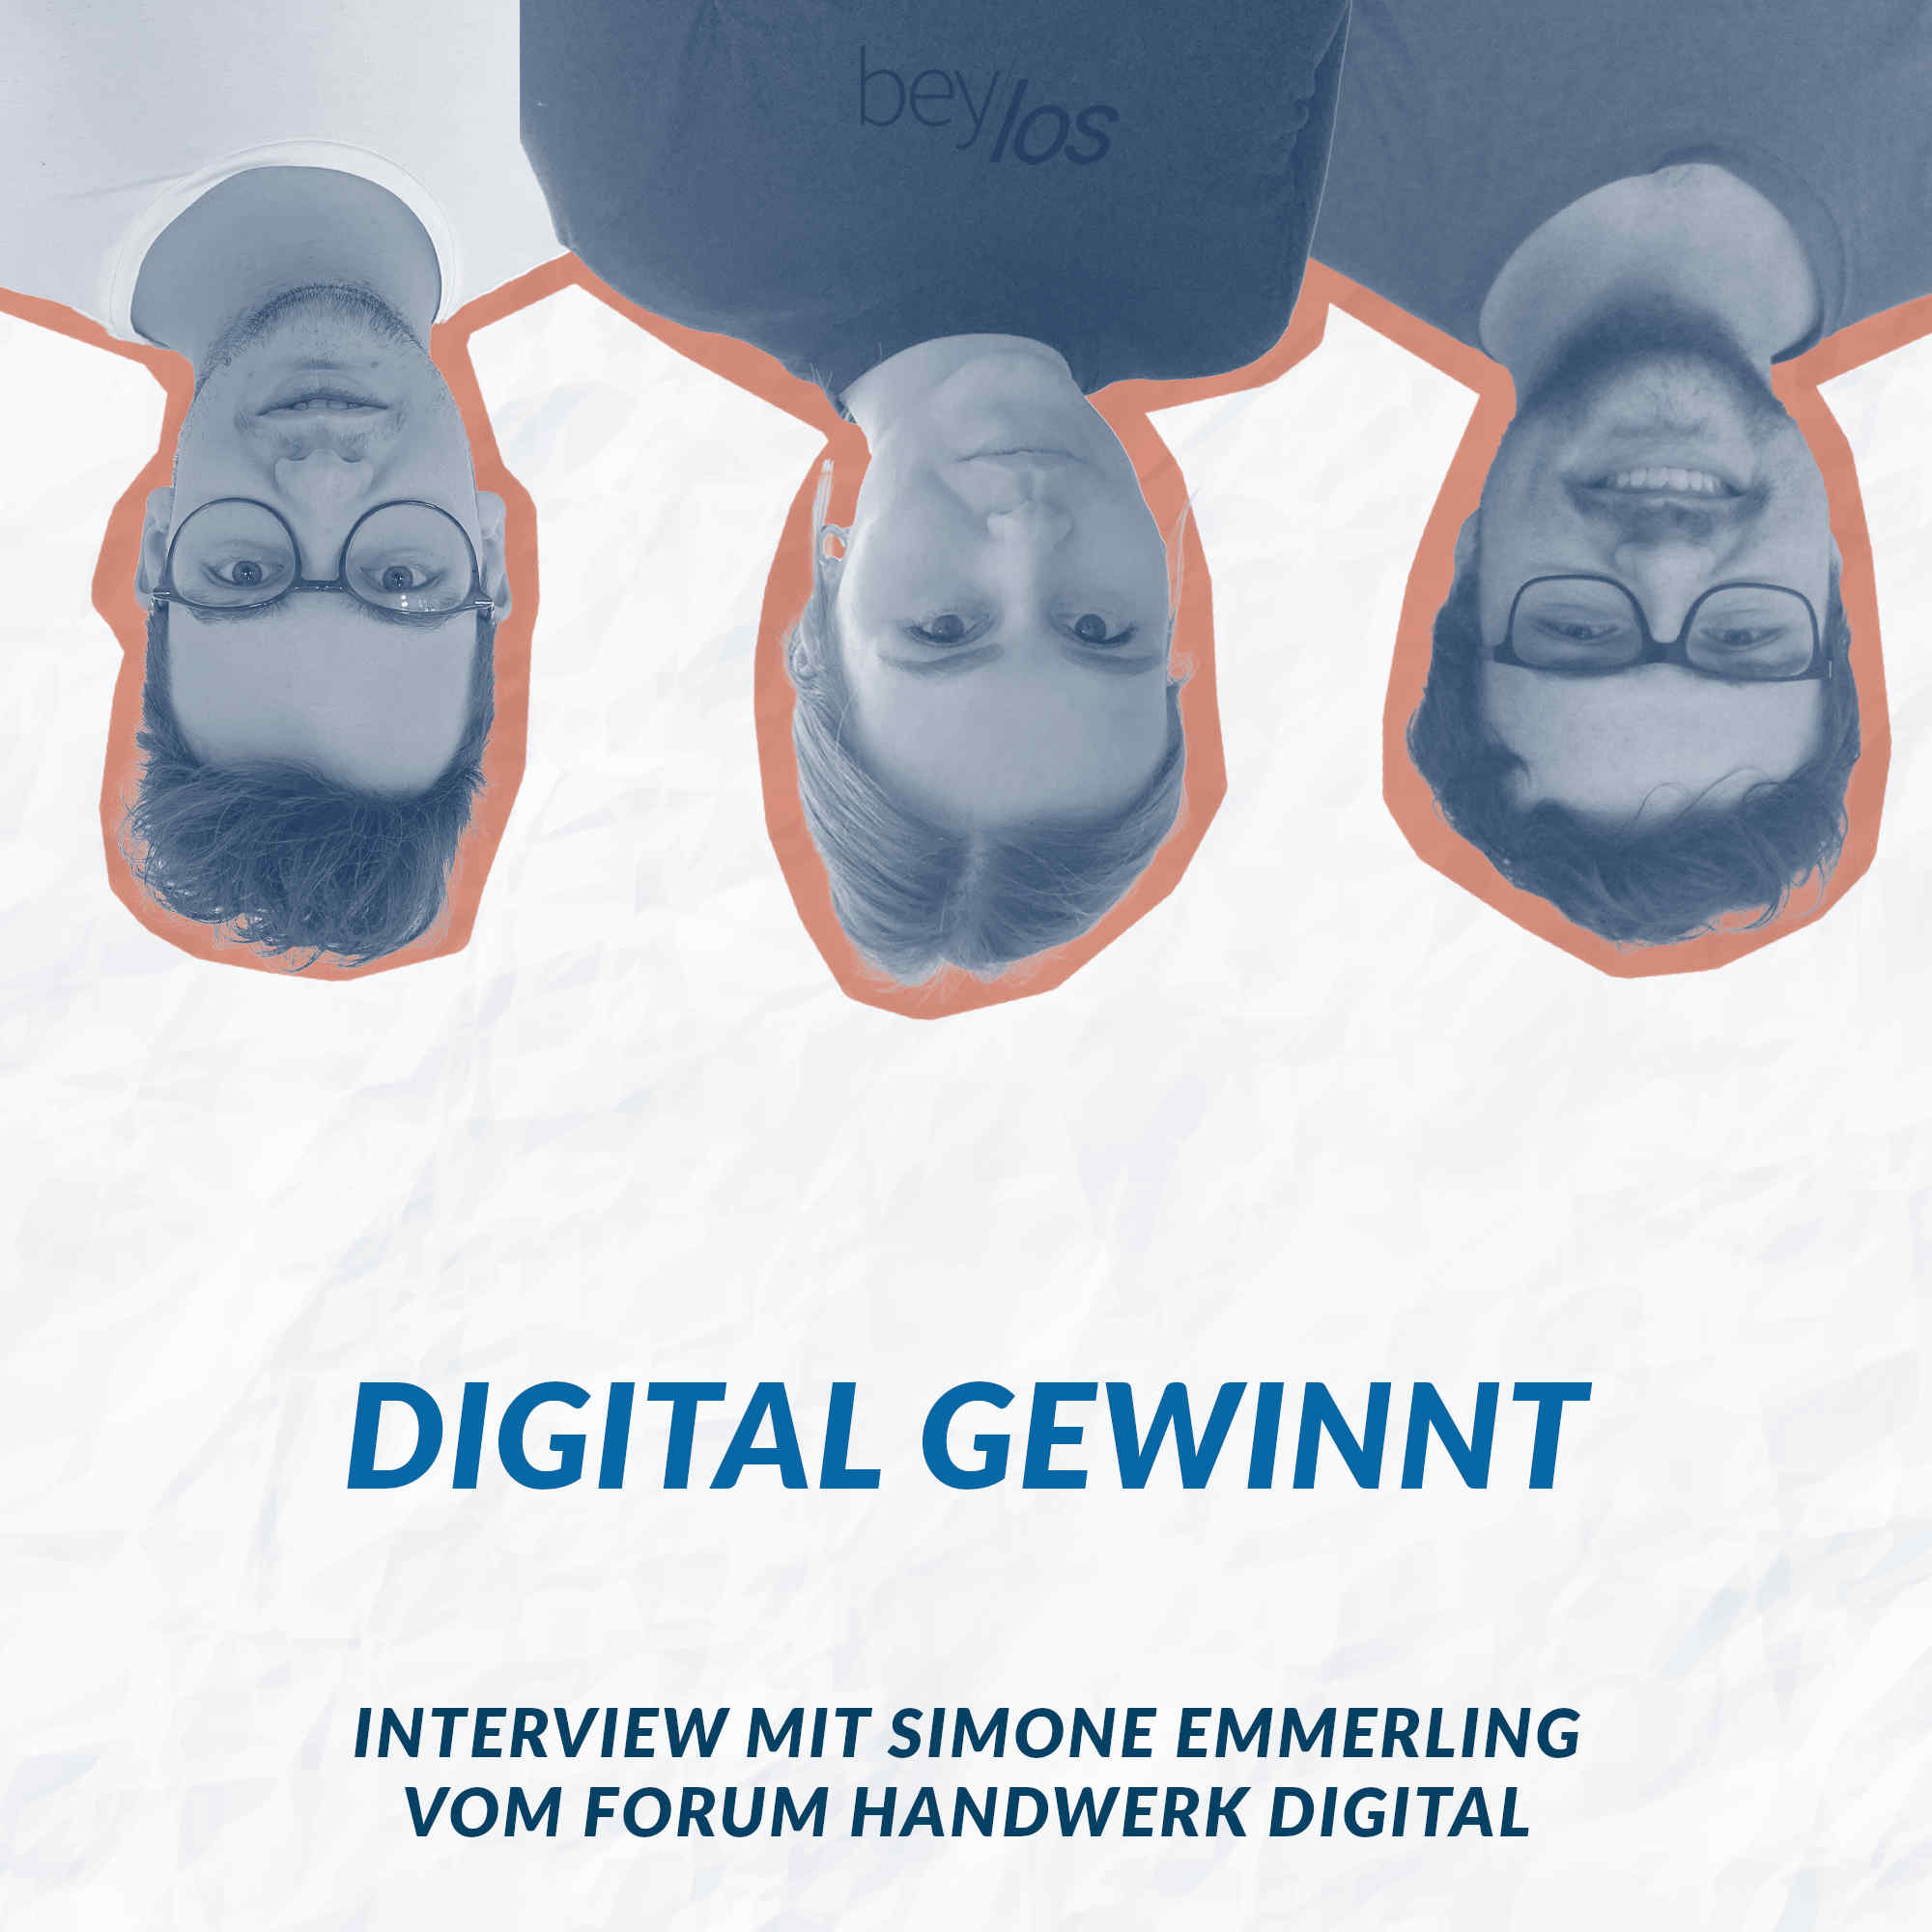 Interview mit Simone Emmerling vom Forum Handwerk Digital